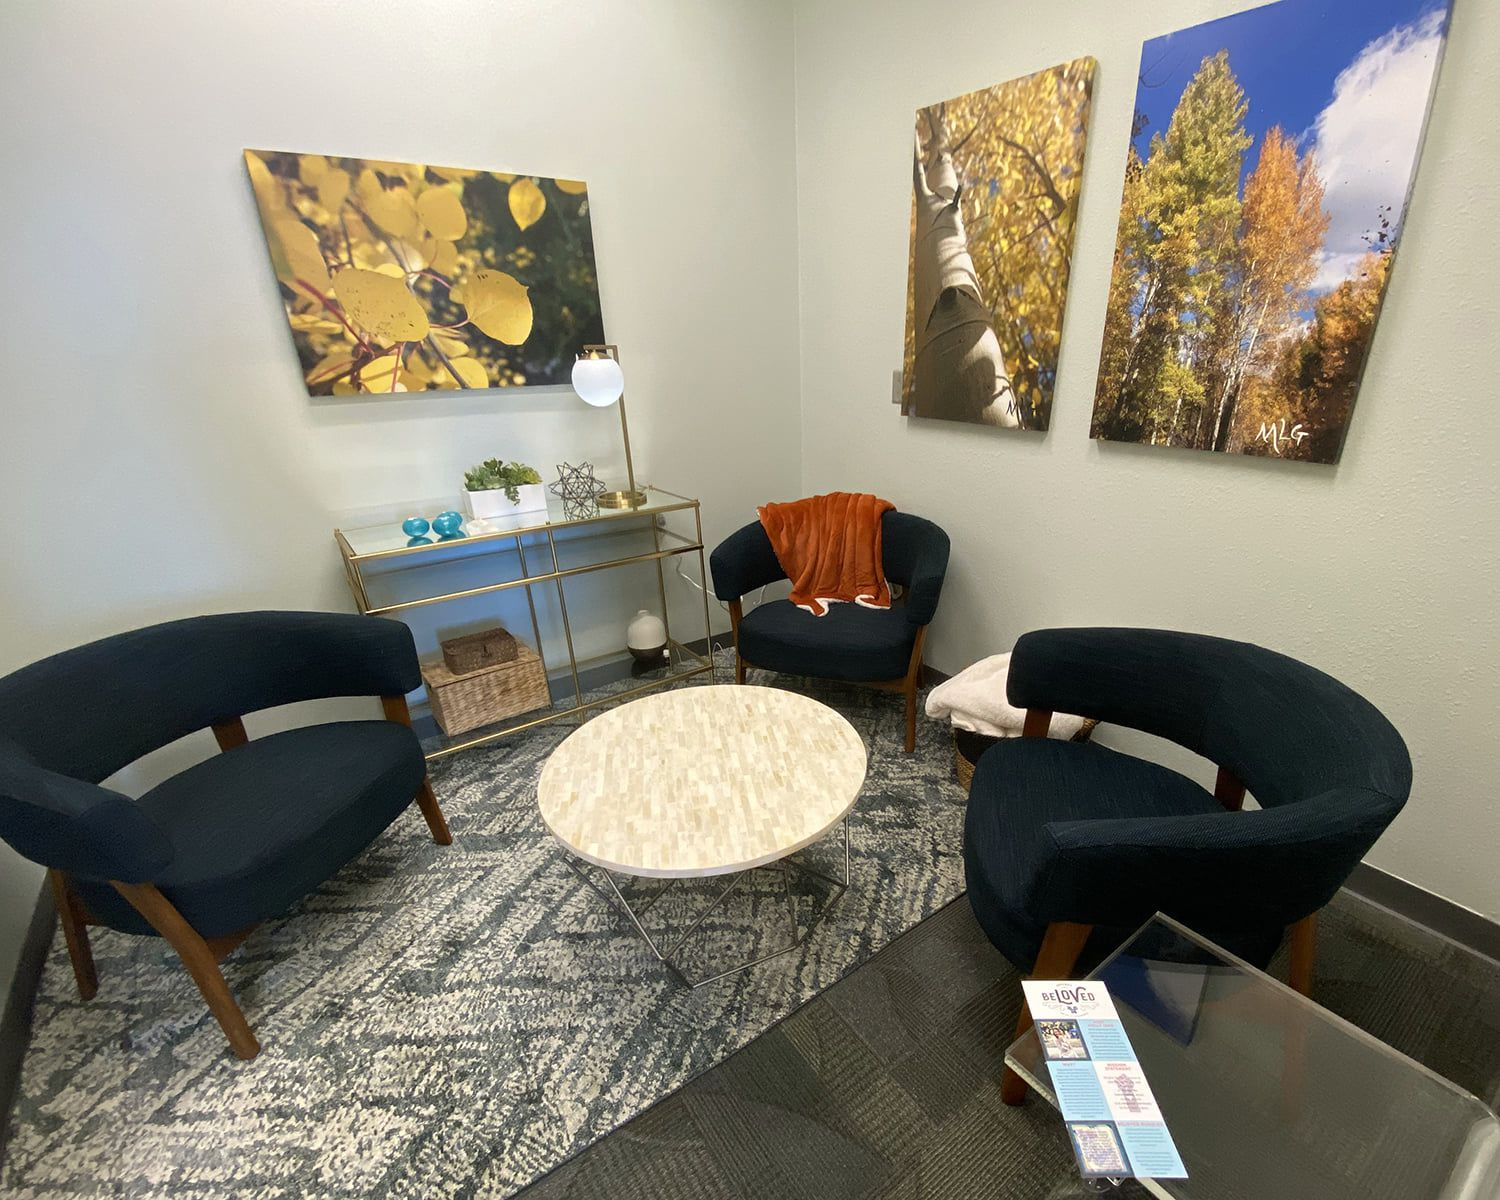 The Mesquite Police Department debuted its soft interview room Aug. 27 in partnership with Project Beloved.